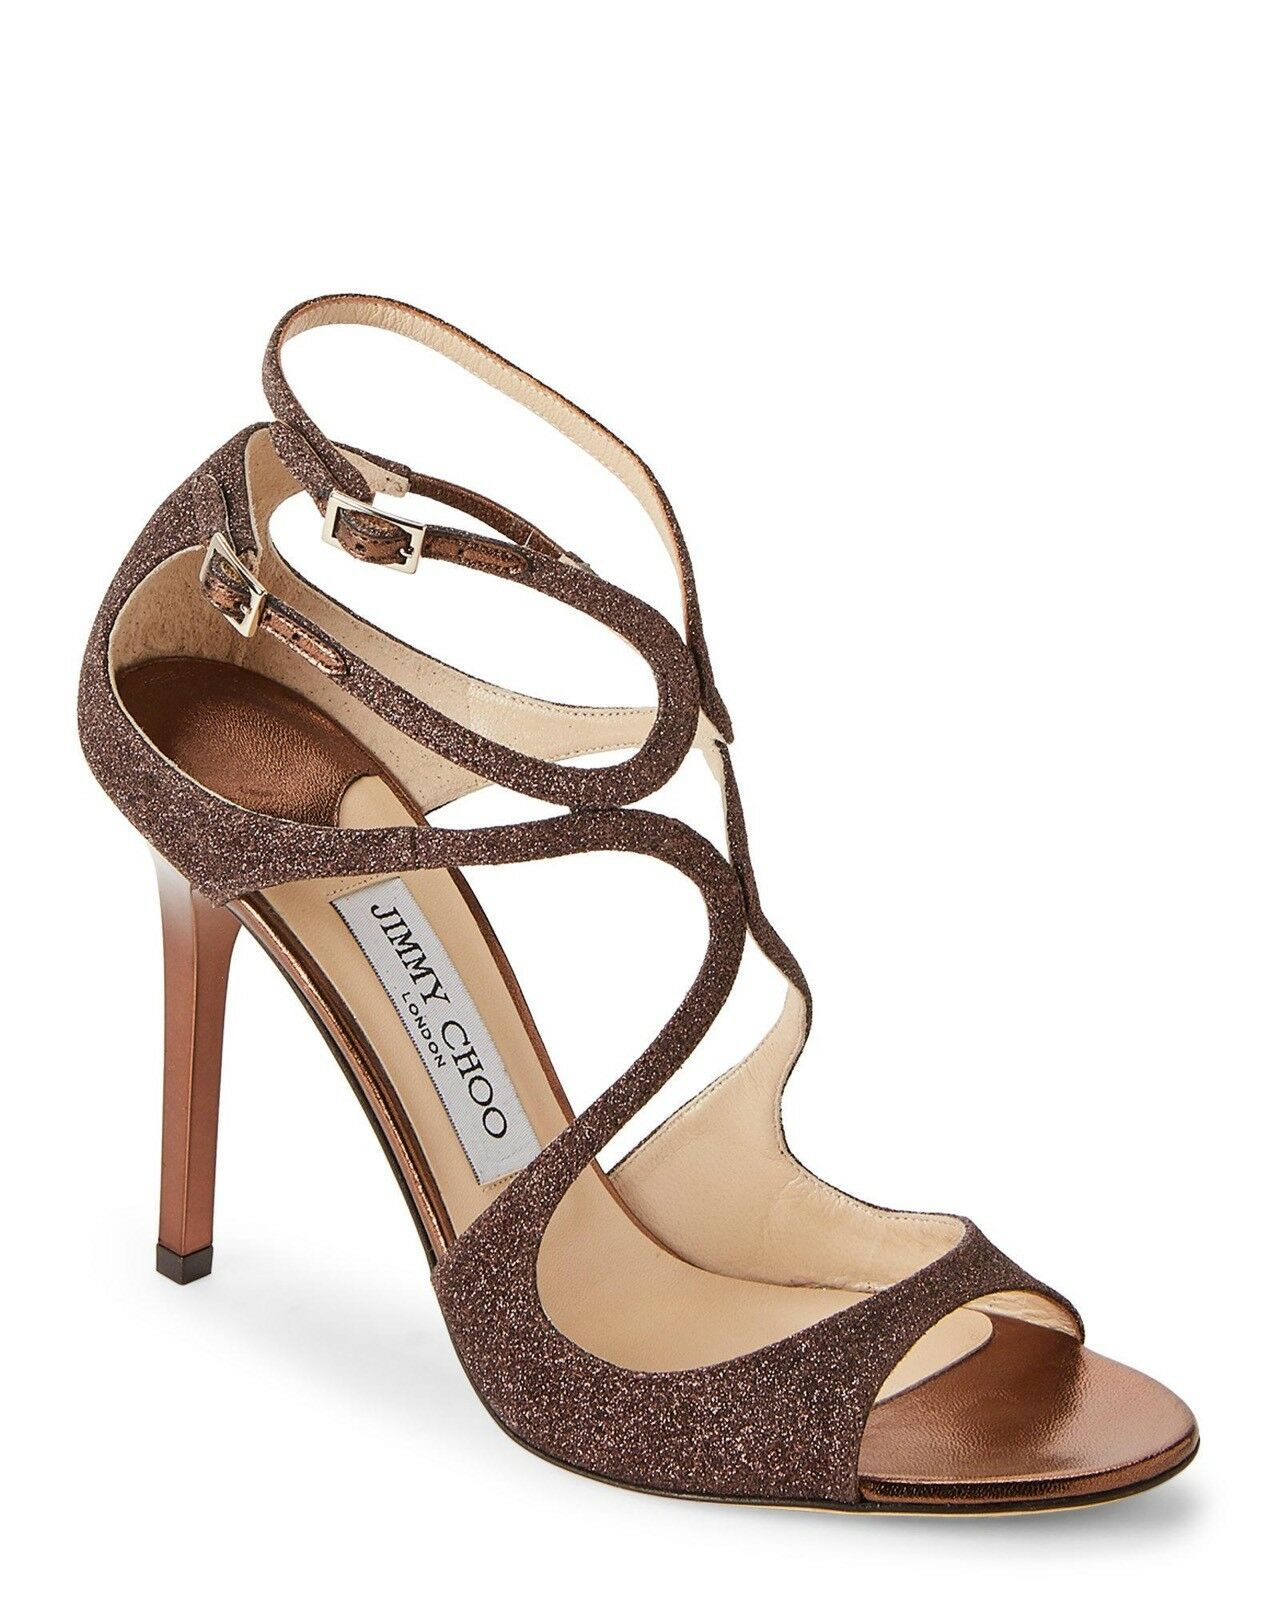 New New New In Box Jimmy Choo Lang Bronze Glitterouge Strappy Sandals Taille 37 7  895.00 070ef7